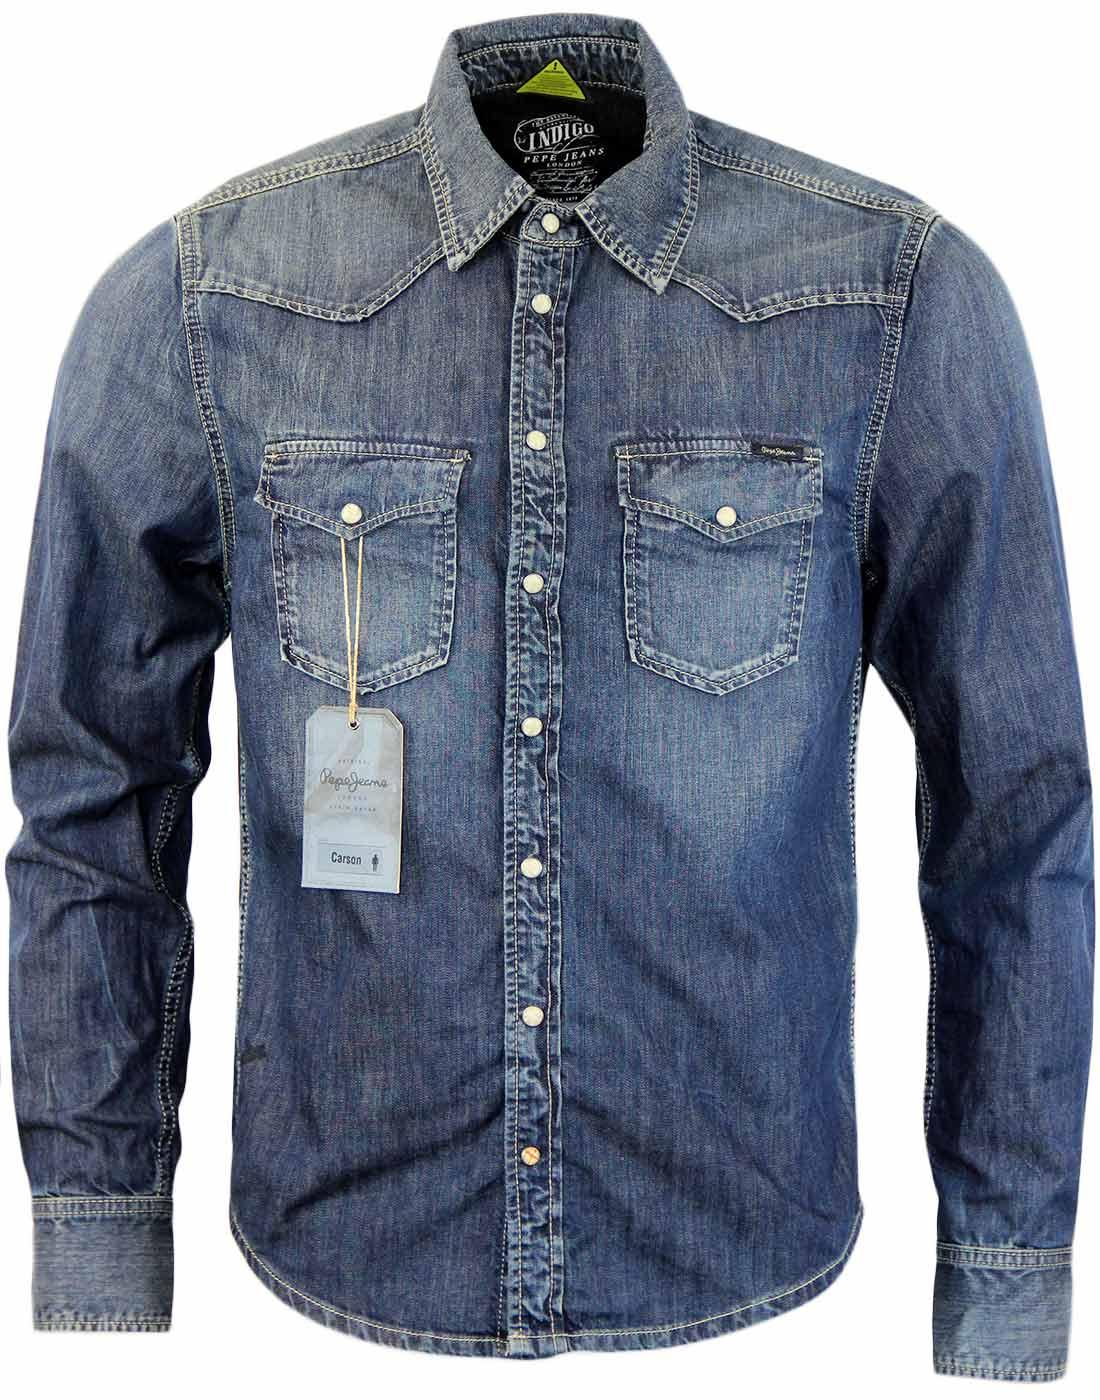 Carson PEPE JEANS Retro Dark Indigo Denim Shirt